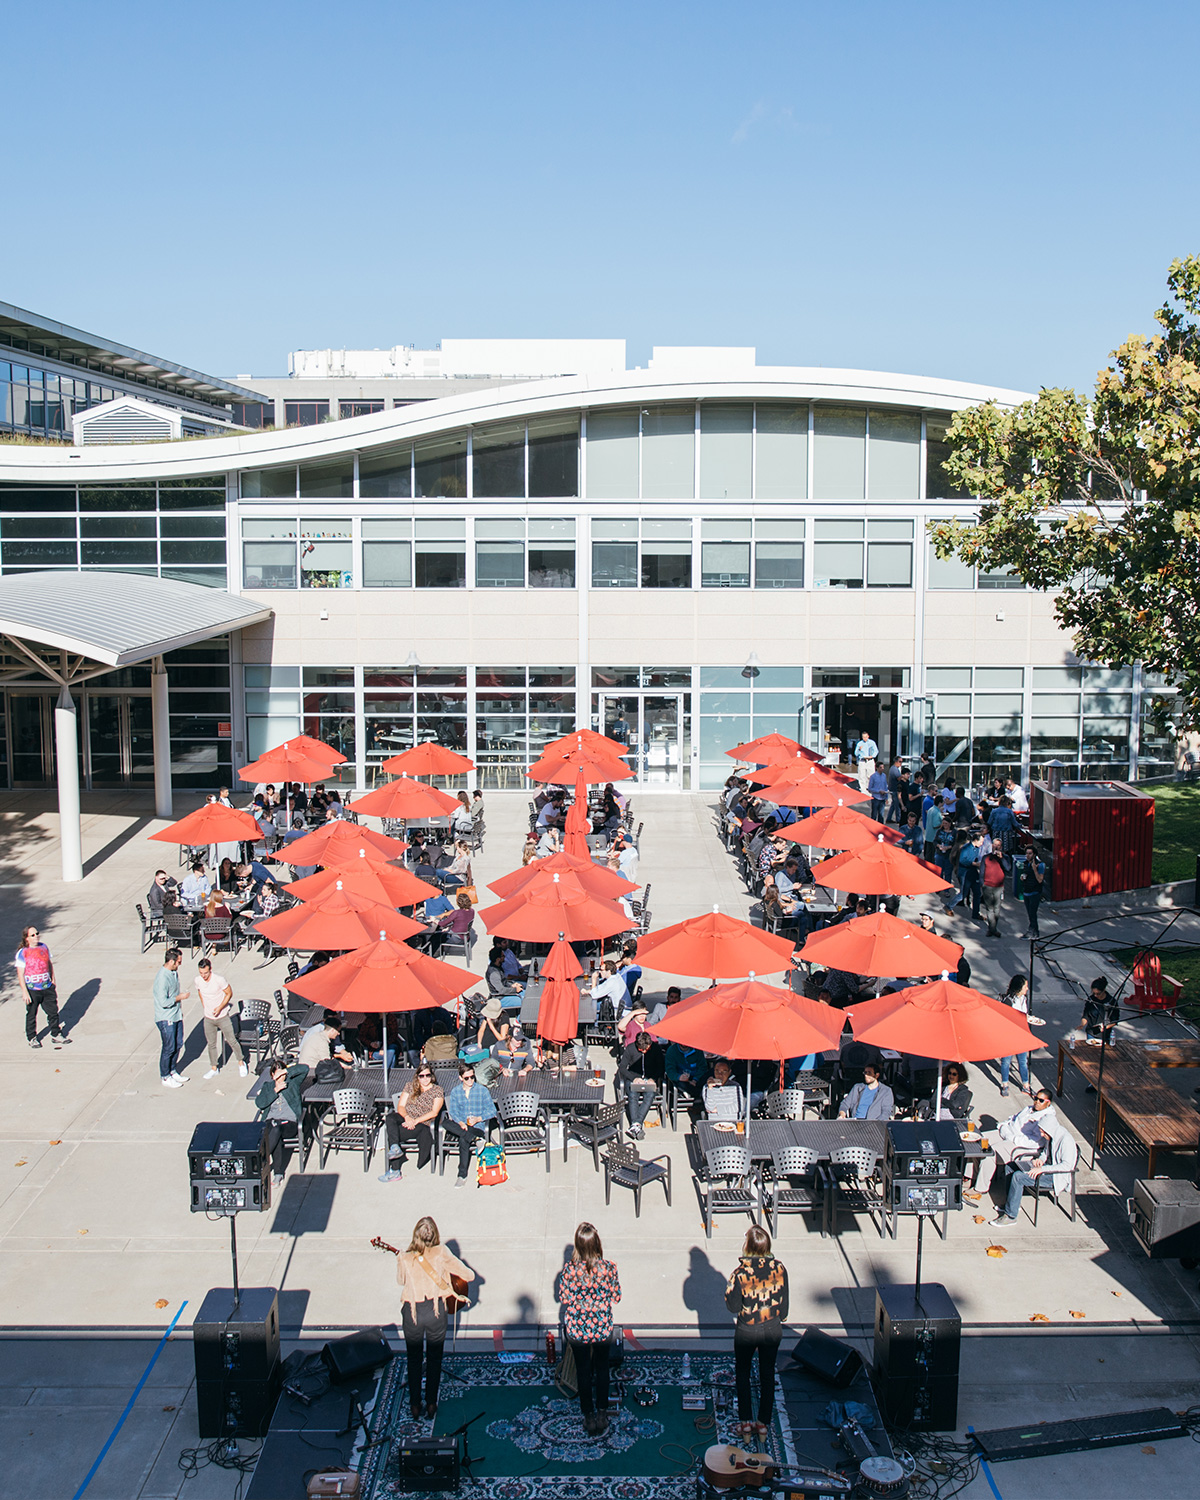 An aerial shot of the YouTube outdoor seating area, looking at the red patio umbrellas.